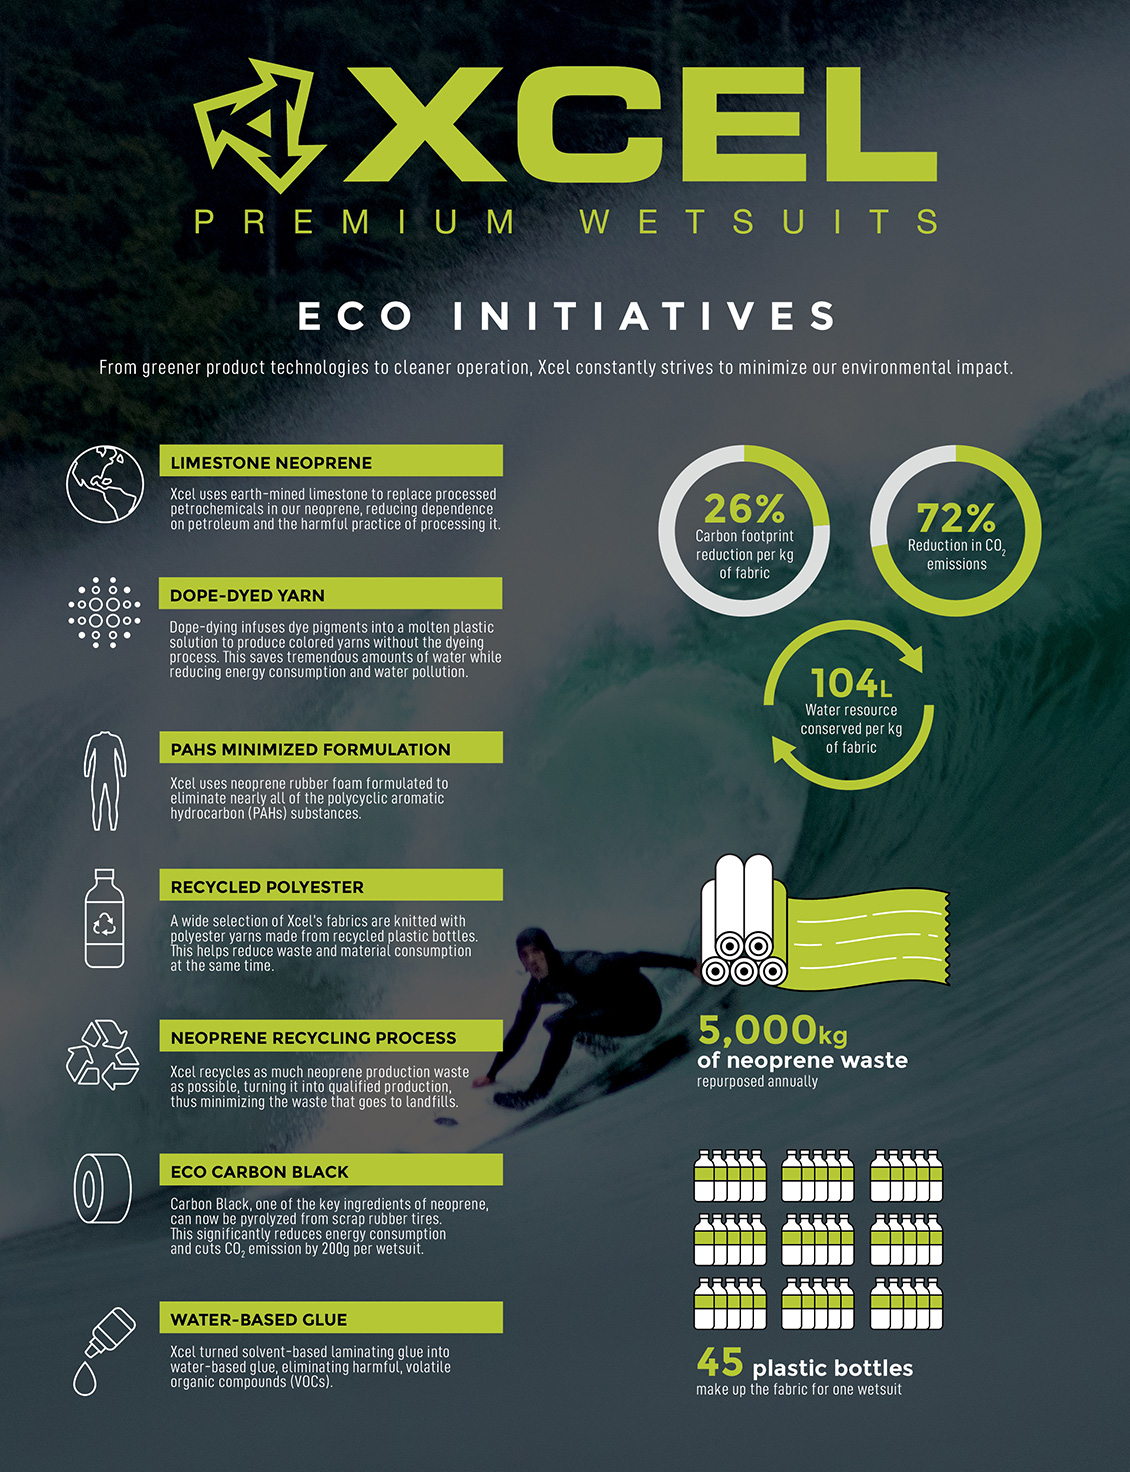 xcel-eco-initiatives-wide.jpg